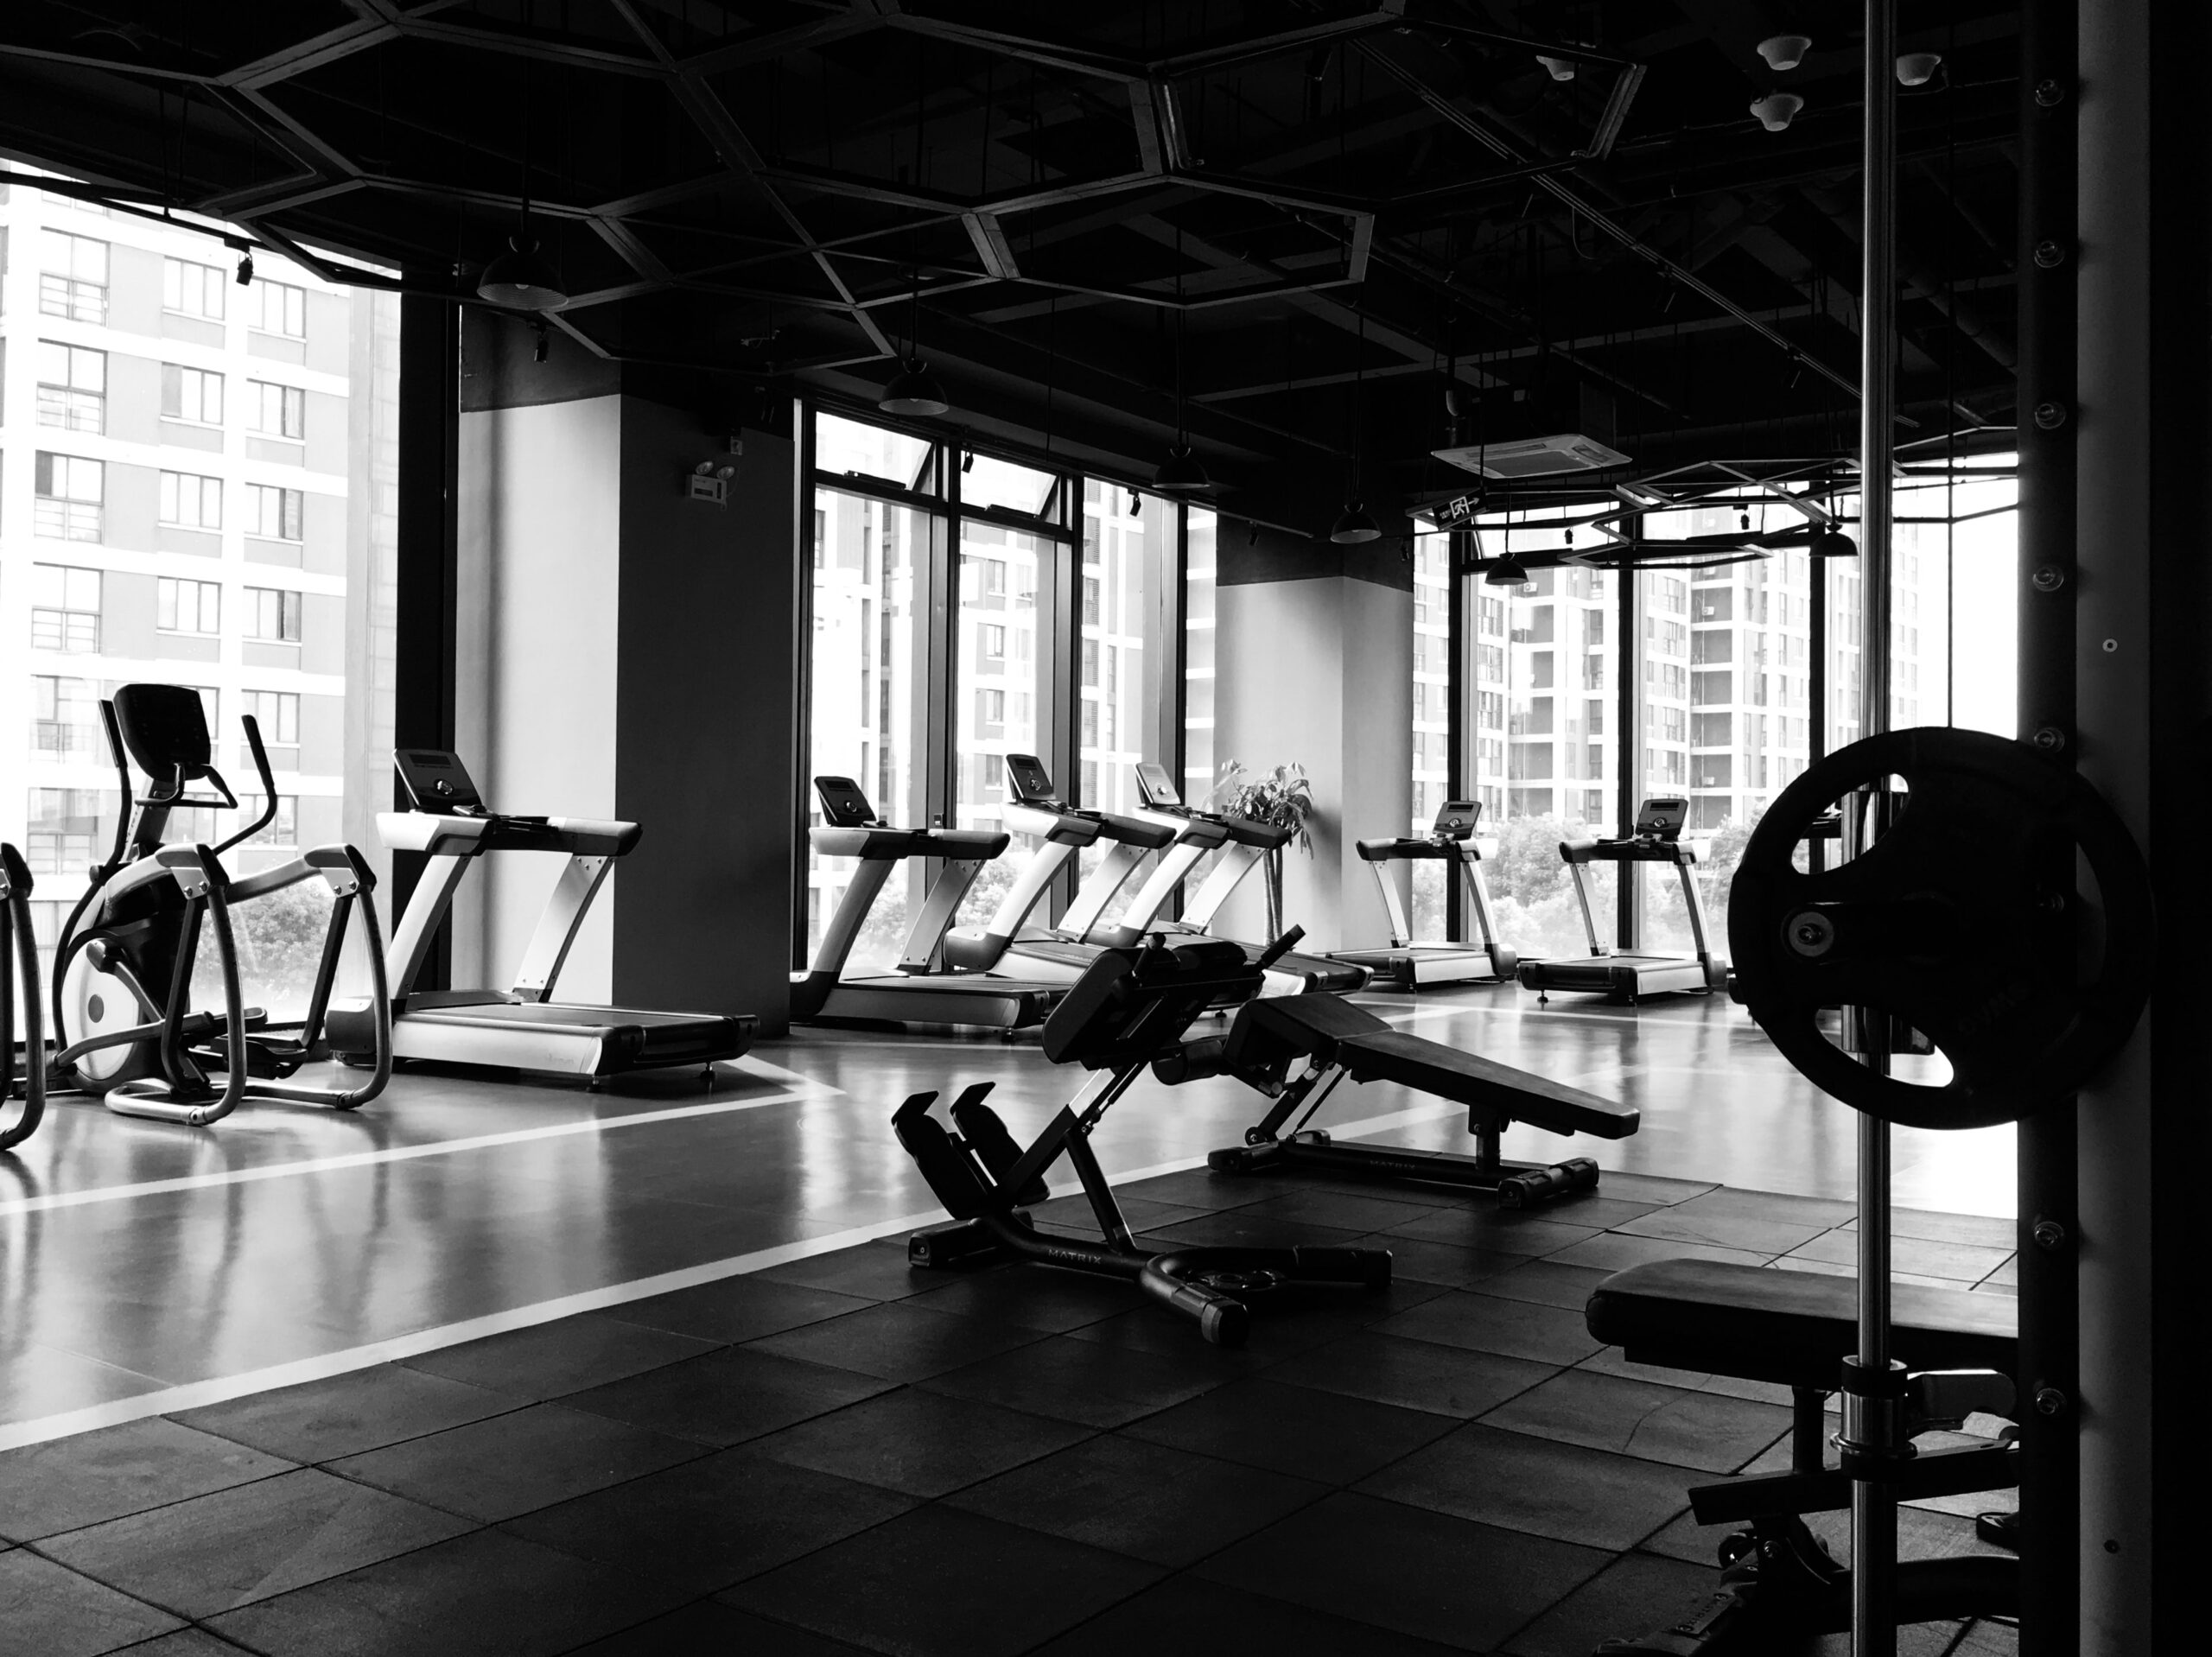 Continued Lockdown Of Fitness and Leisure Sector Will Cost £90m In Revenue Every Week and £7.25m In Missed Health-Related Savings